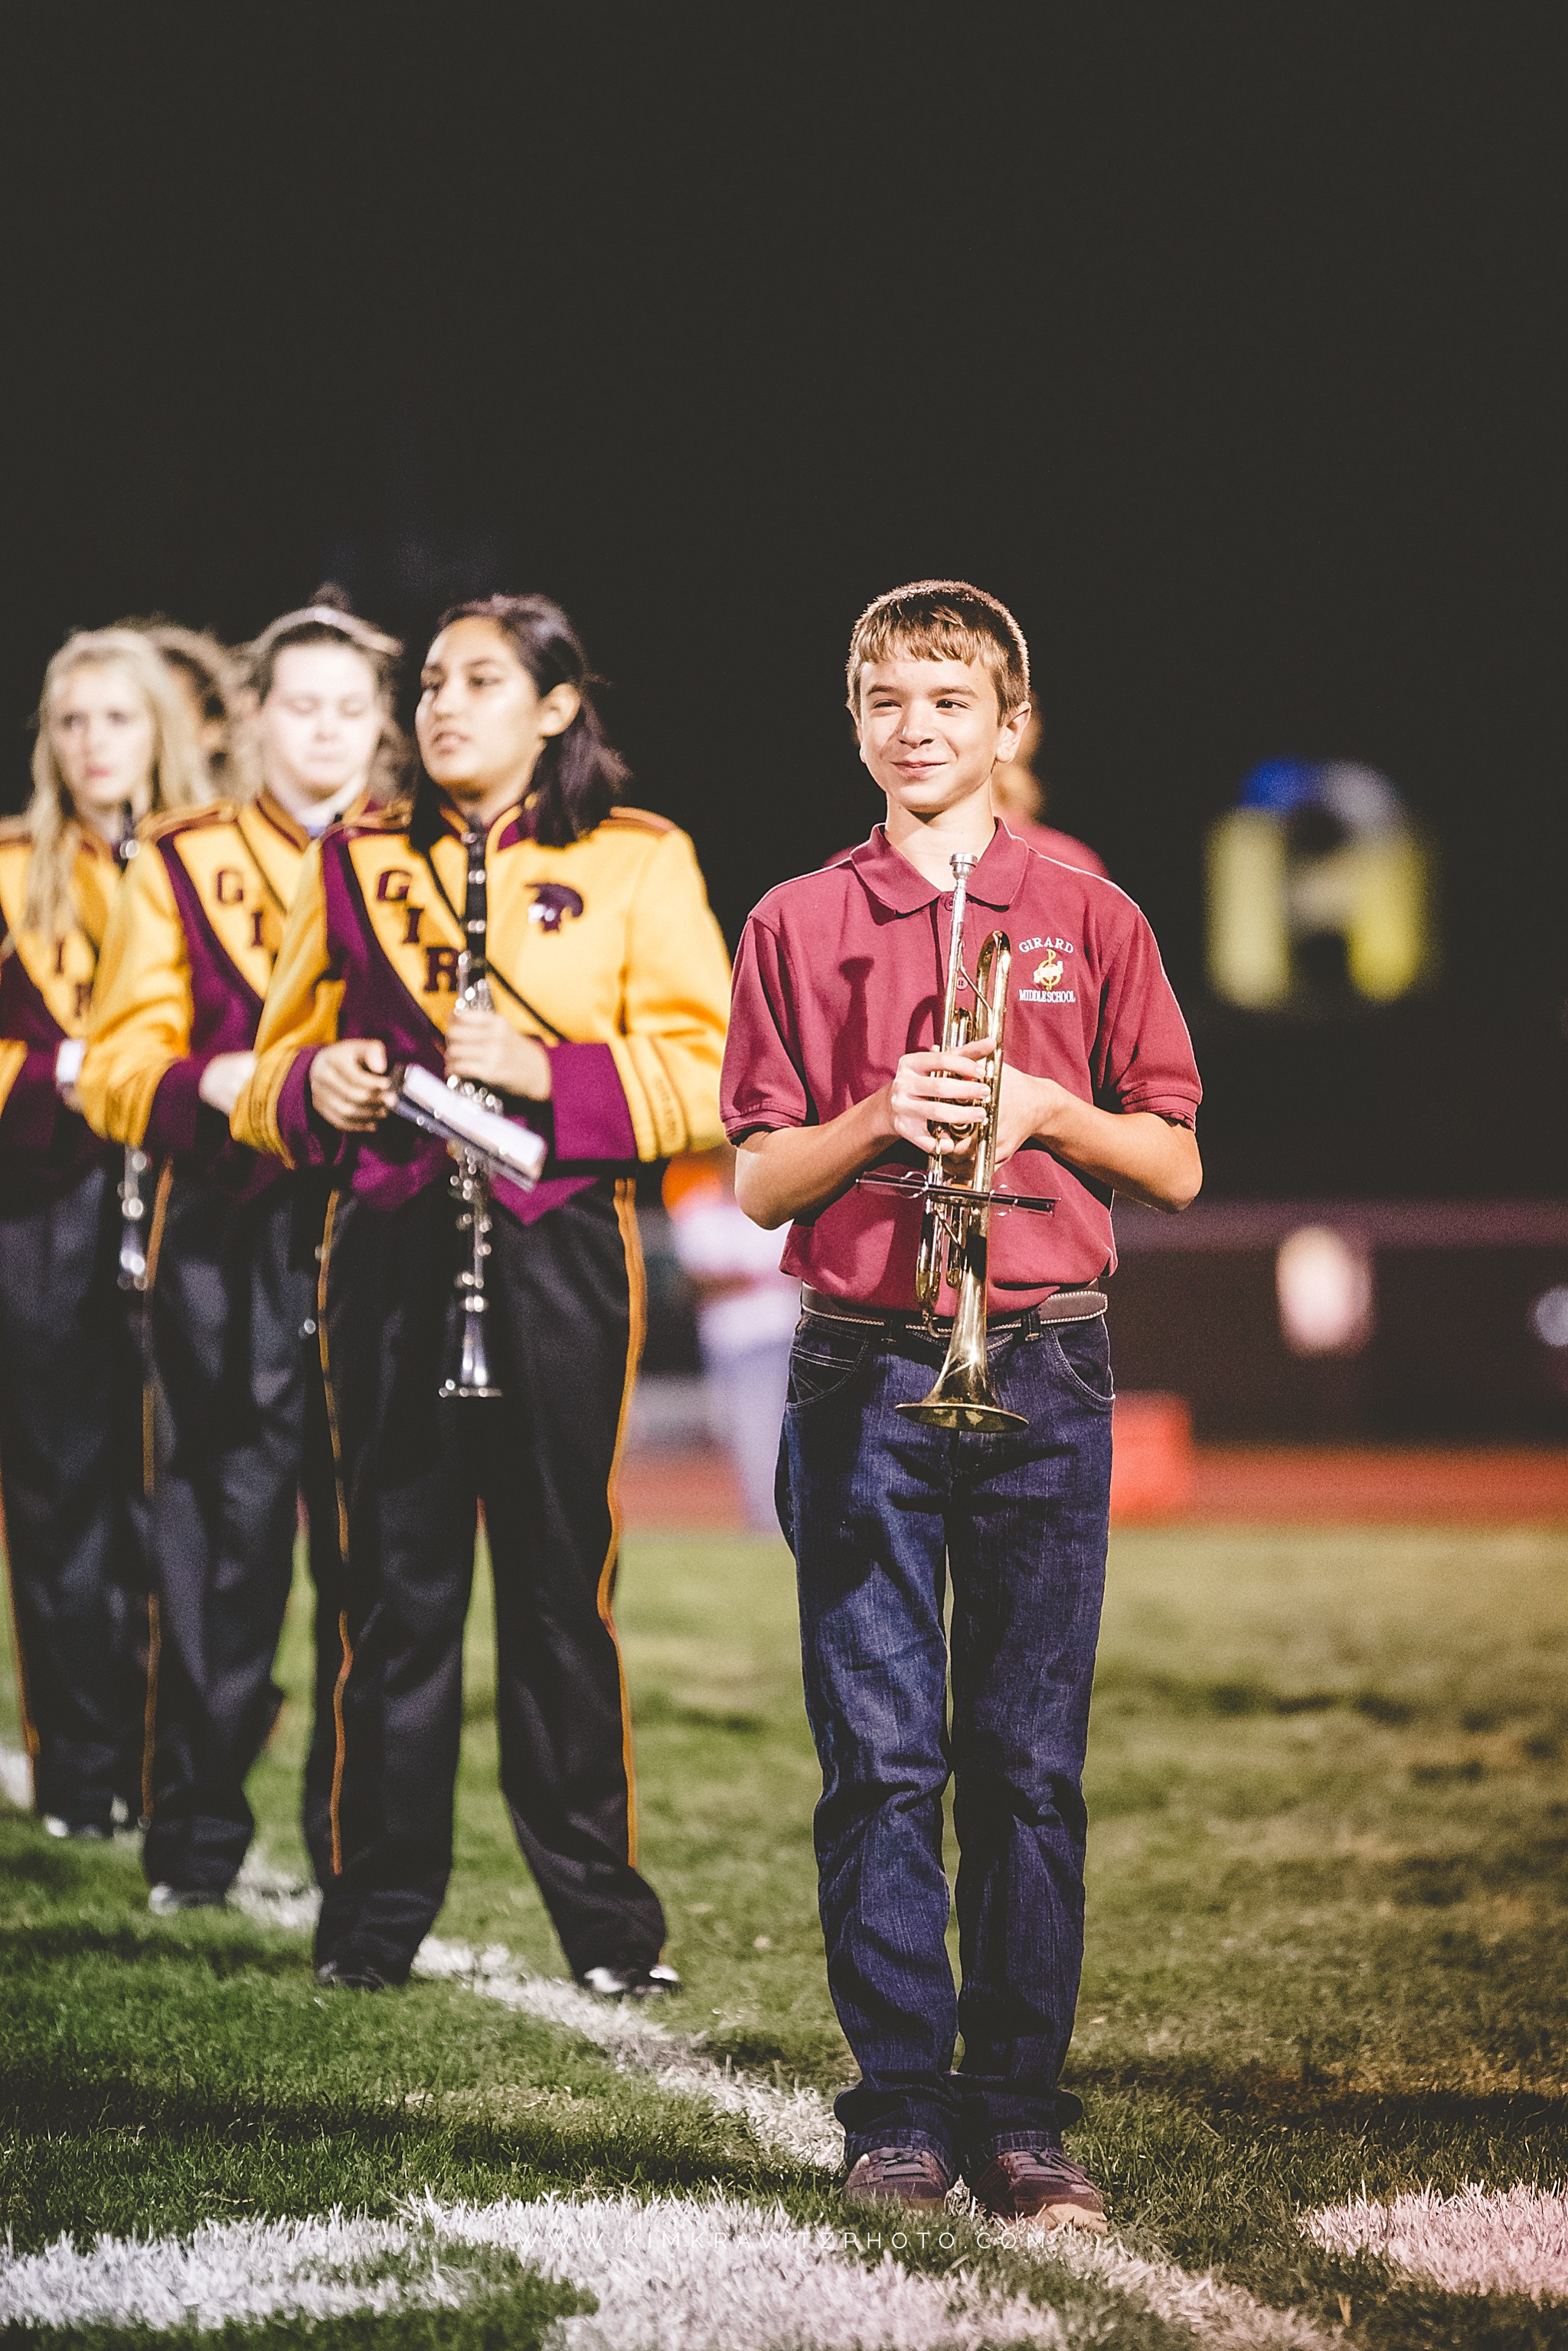 girard high school and middle school mass band performance